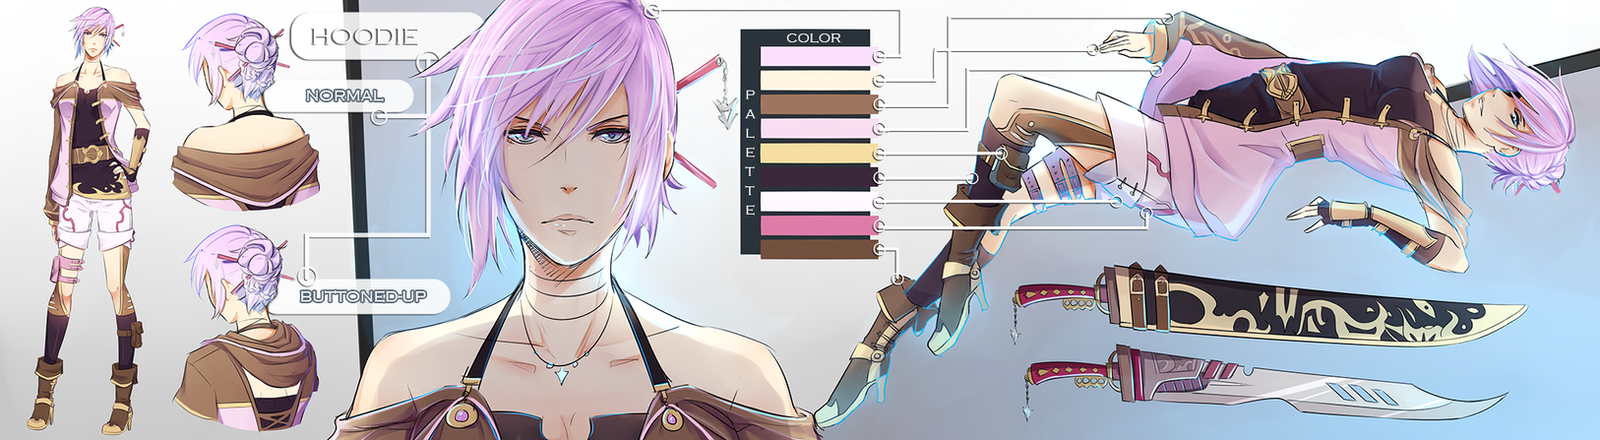 FFXIII : LR Contest by Katkat-Tan